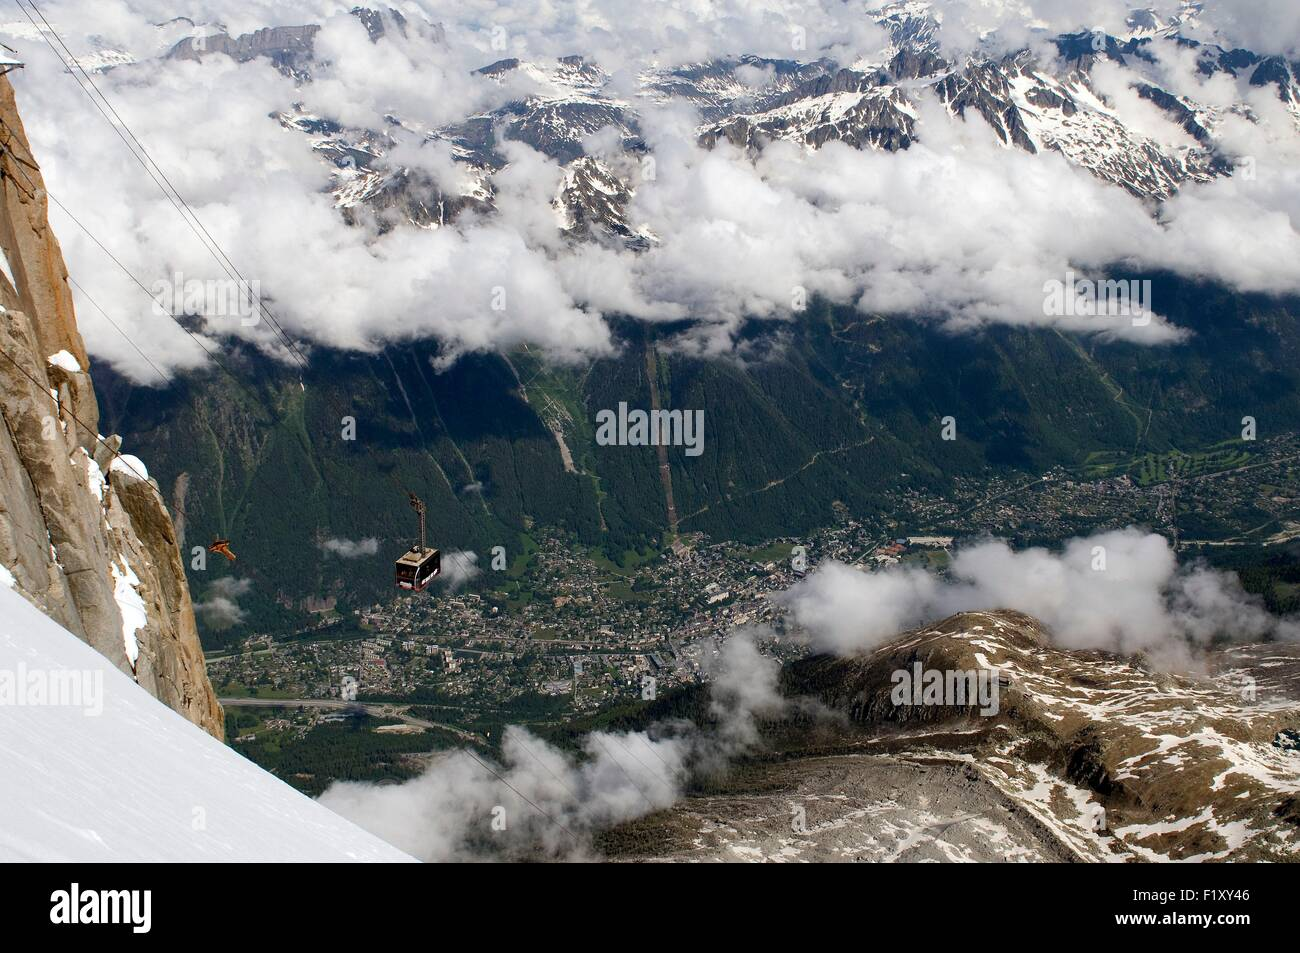 France, Alps, Chamonix, cable car to the Aiguille du Midi - Stock Image